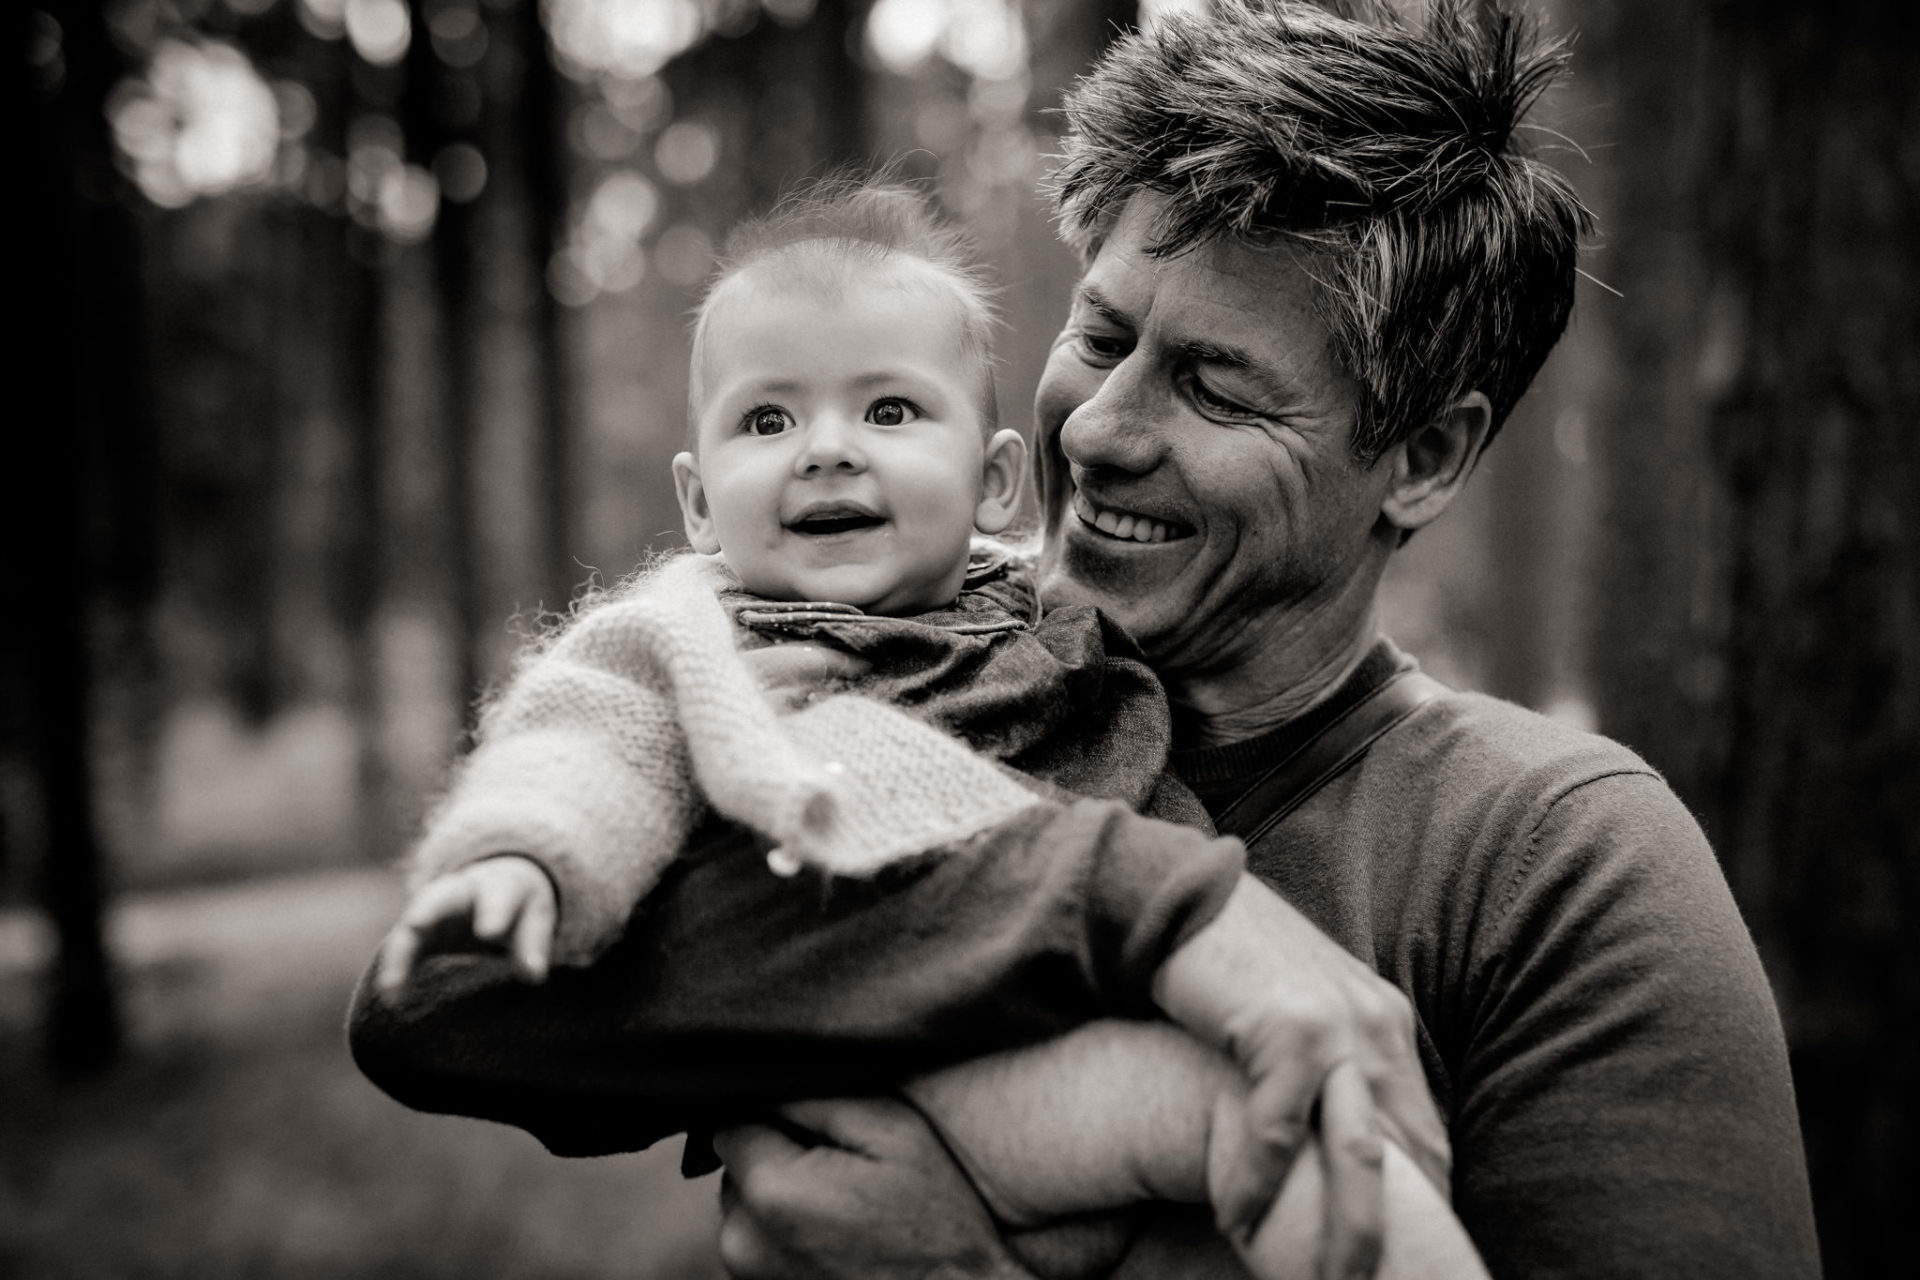 dad and daughter portrait-baby fashion-family photographer berlin